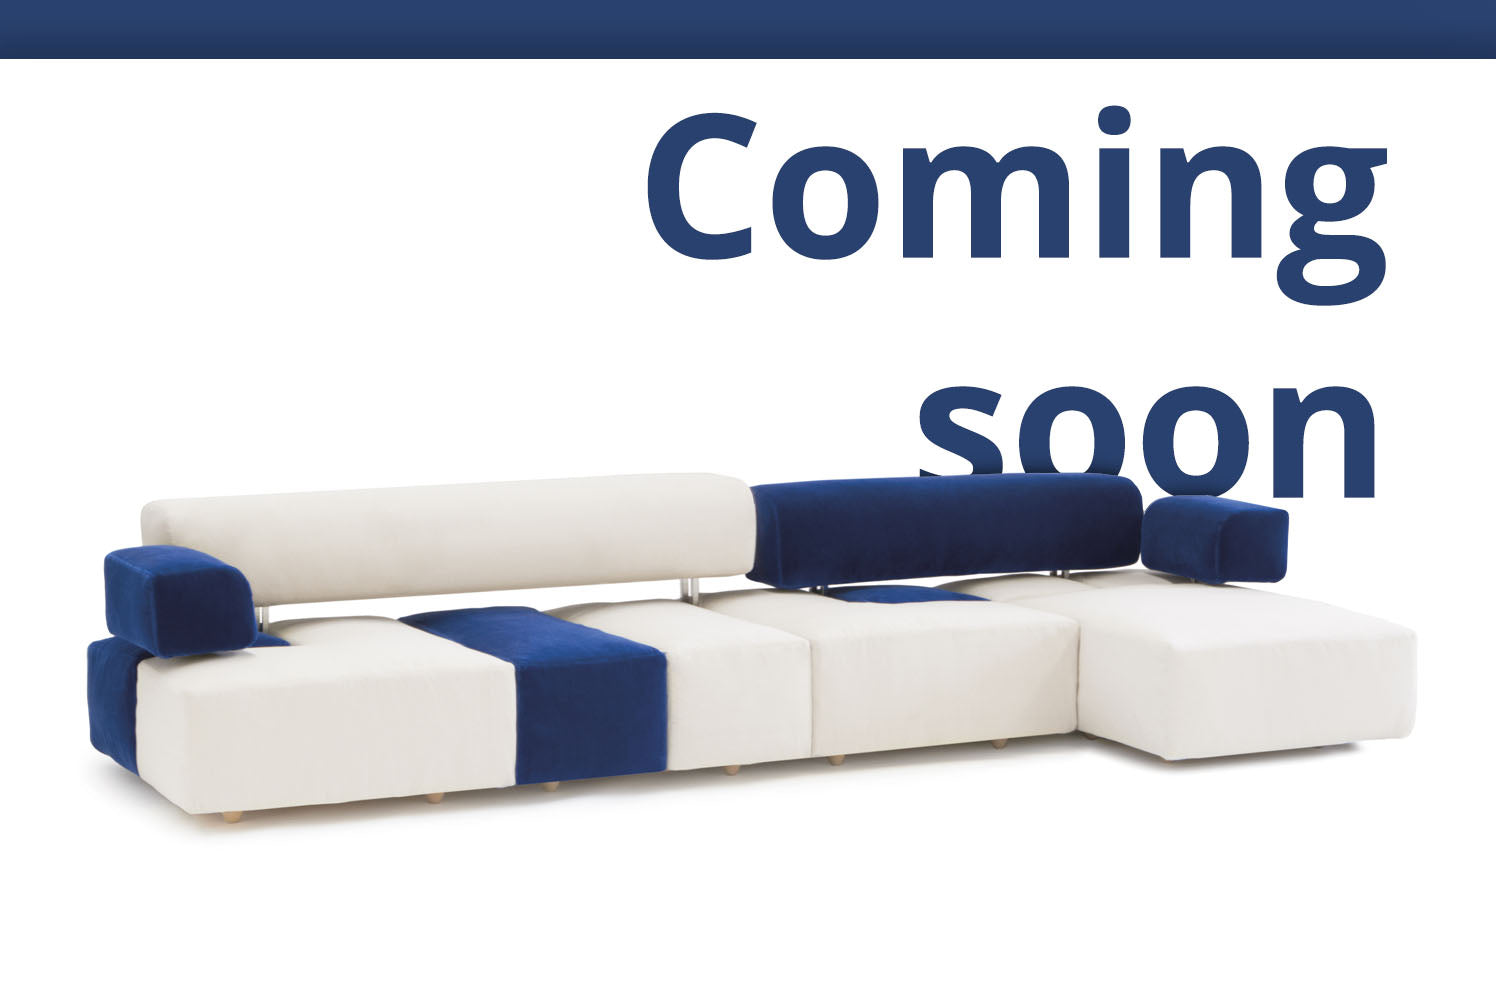 D3CO Sustainable modular sofa Domino - flexible